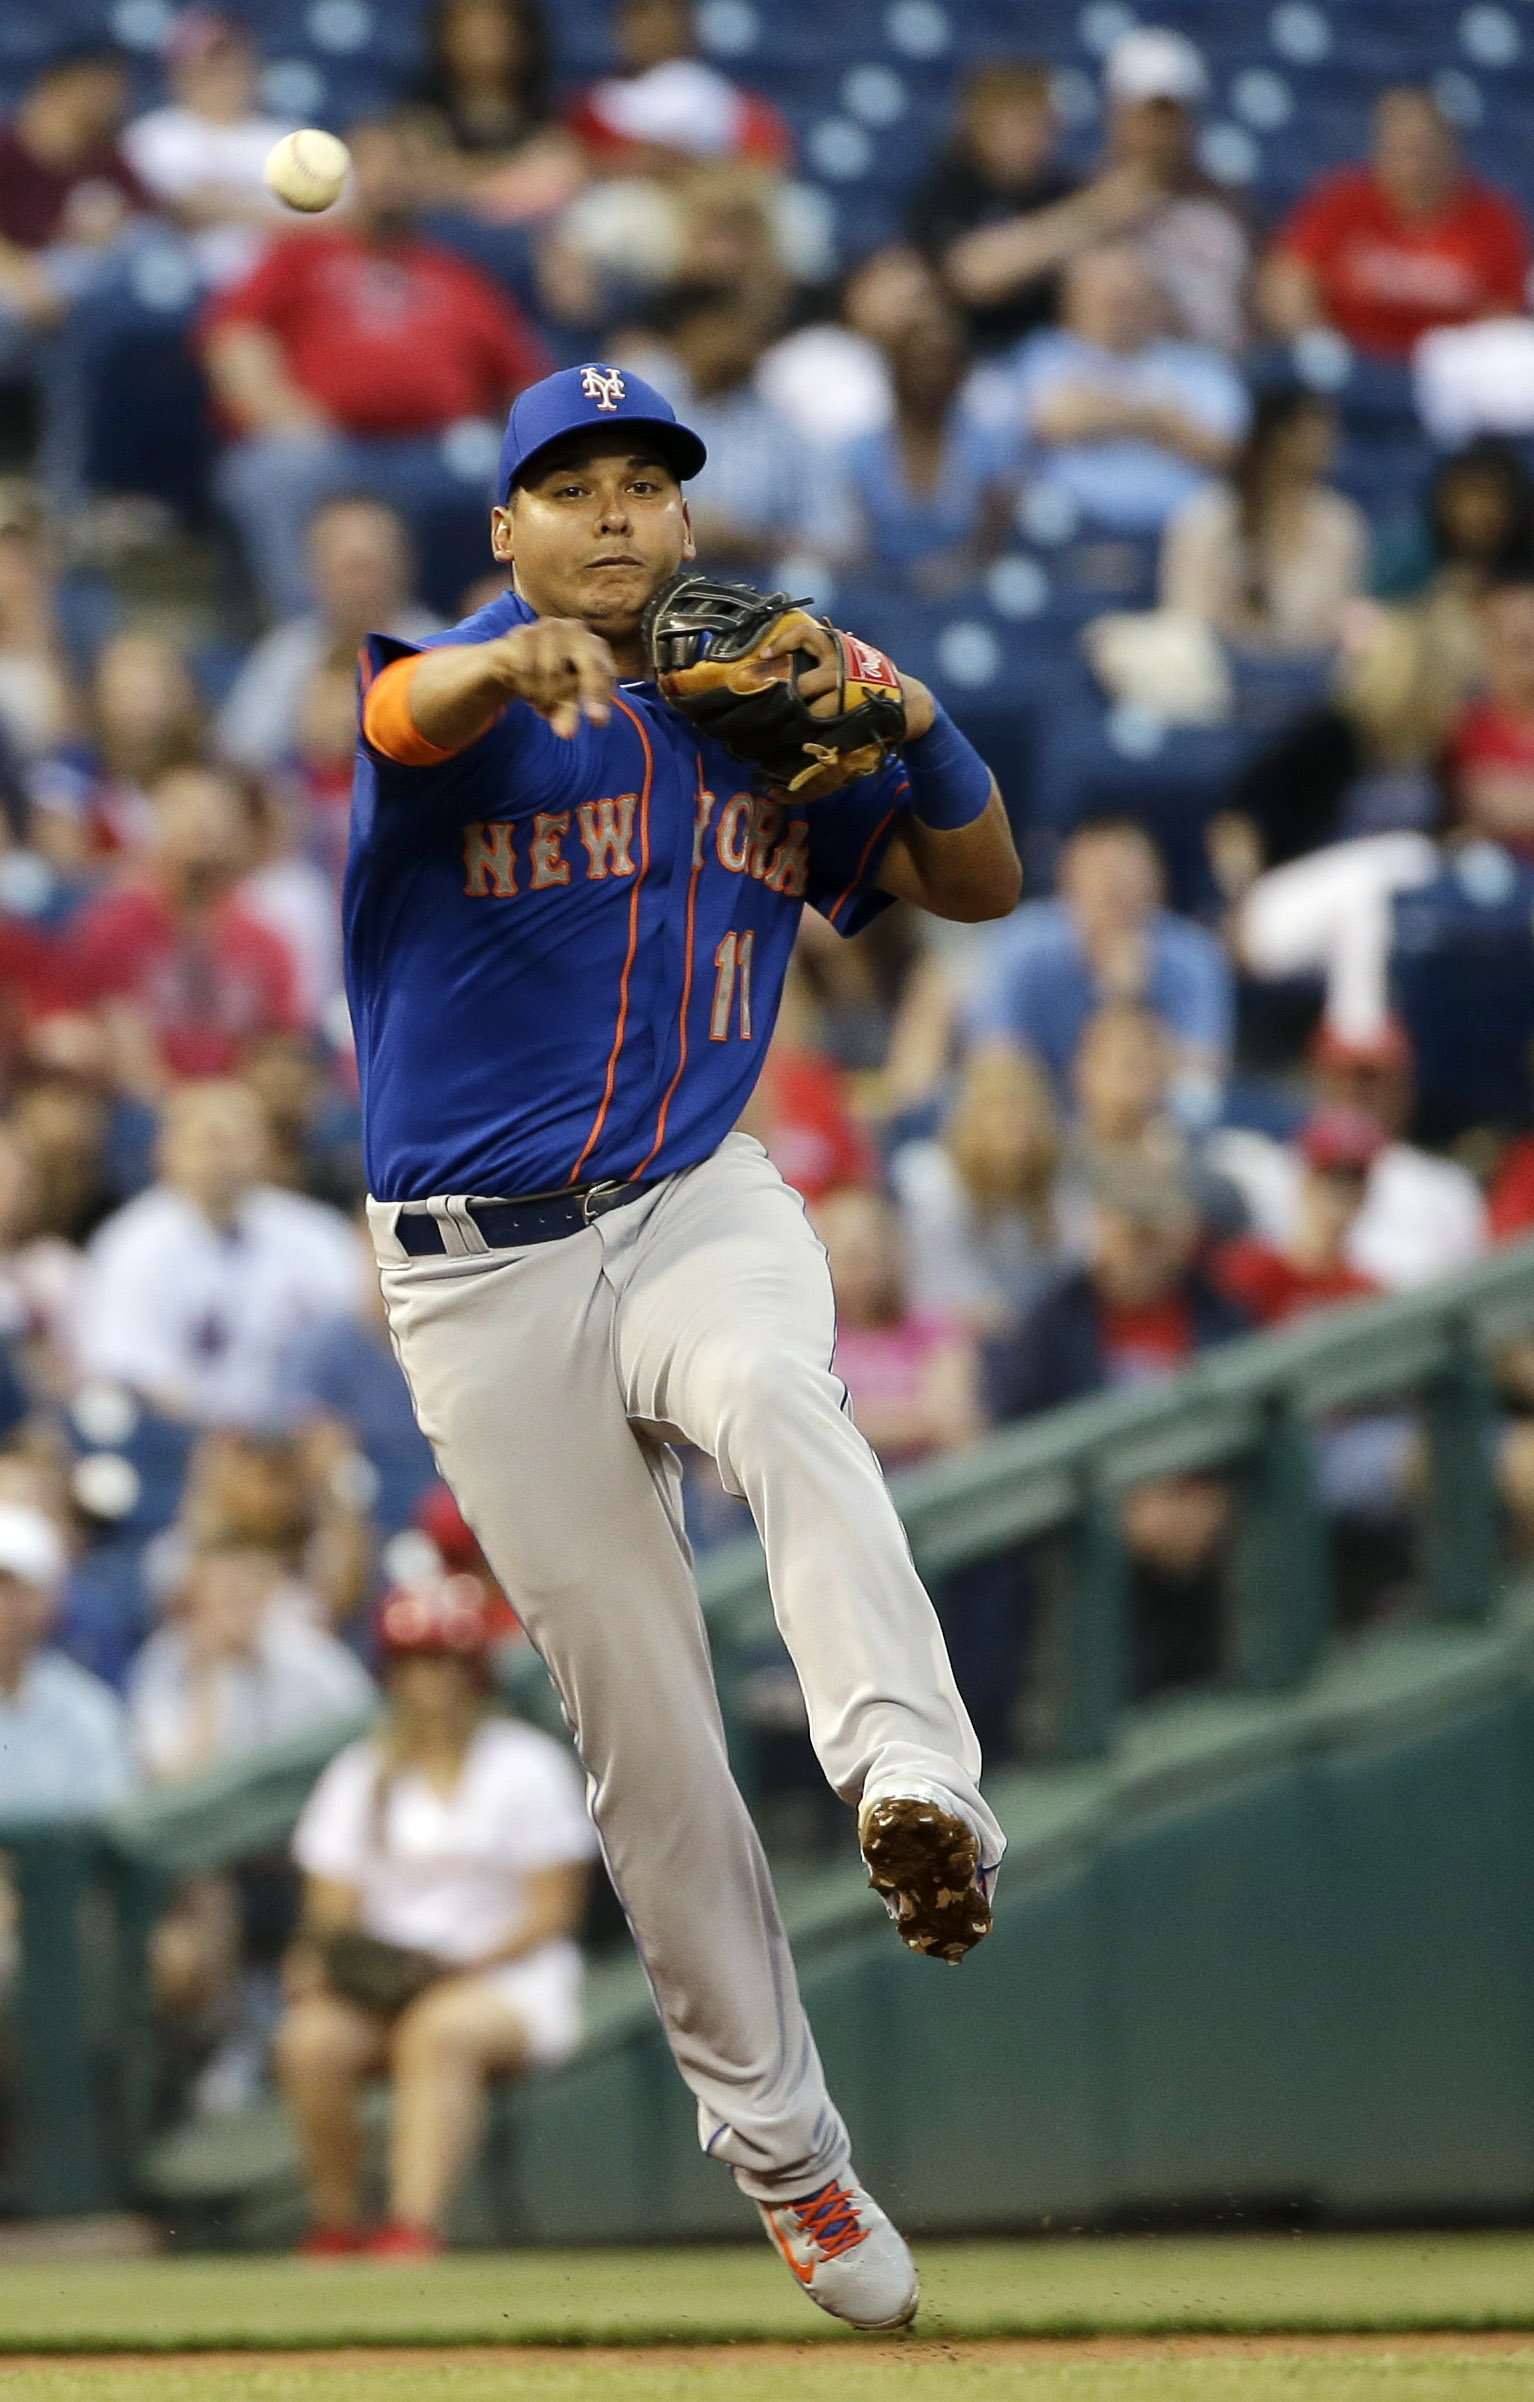 New York Mets shortstop Ruben Tejada throws to first base on a ground out by Philadelphia Phillies' Odubel Herrera during the third inning of a baseball game, Saturday, May 9, 2015, in Philadelphia. (AP Photo/Matt Slocum)